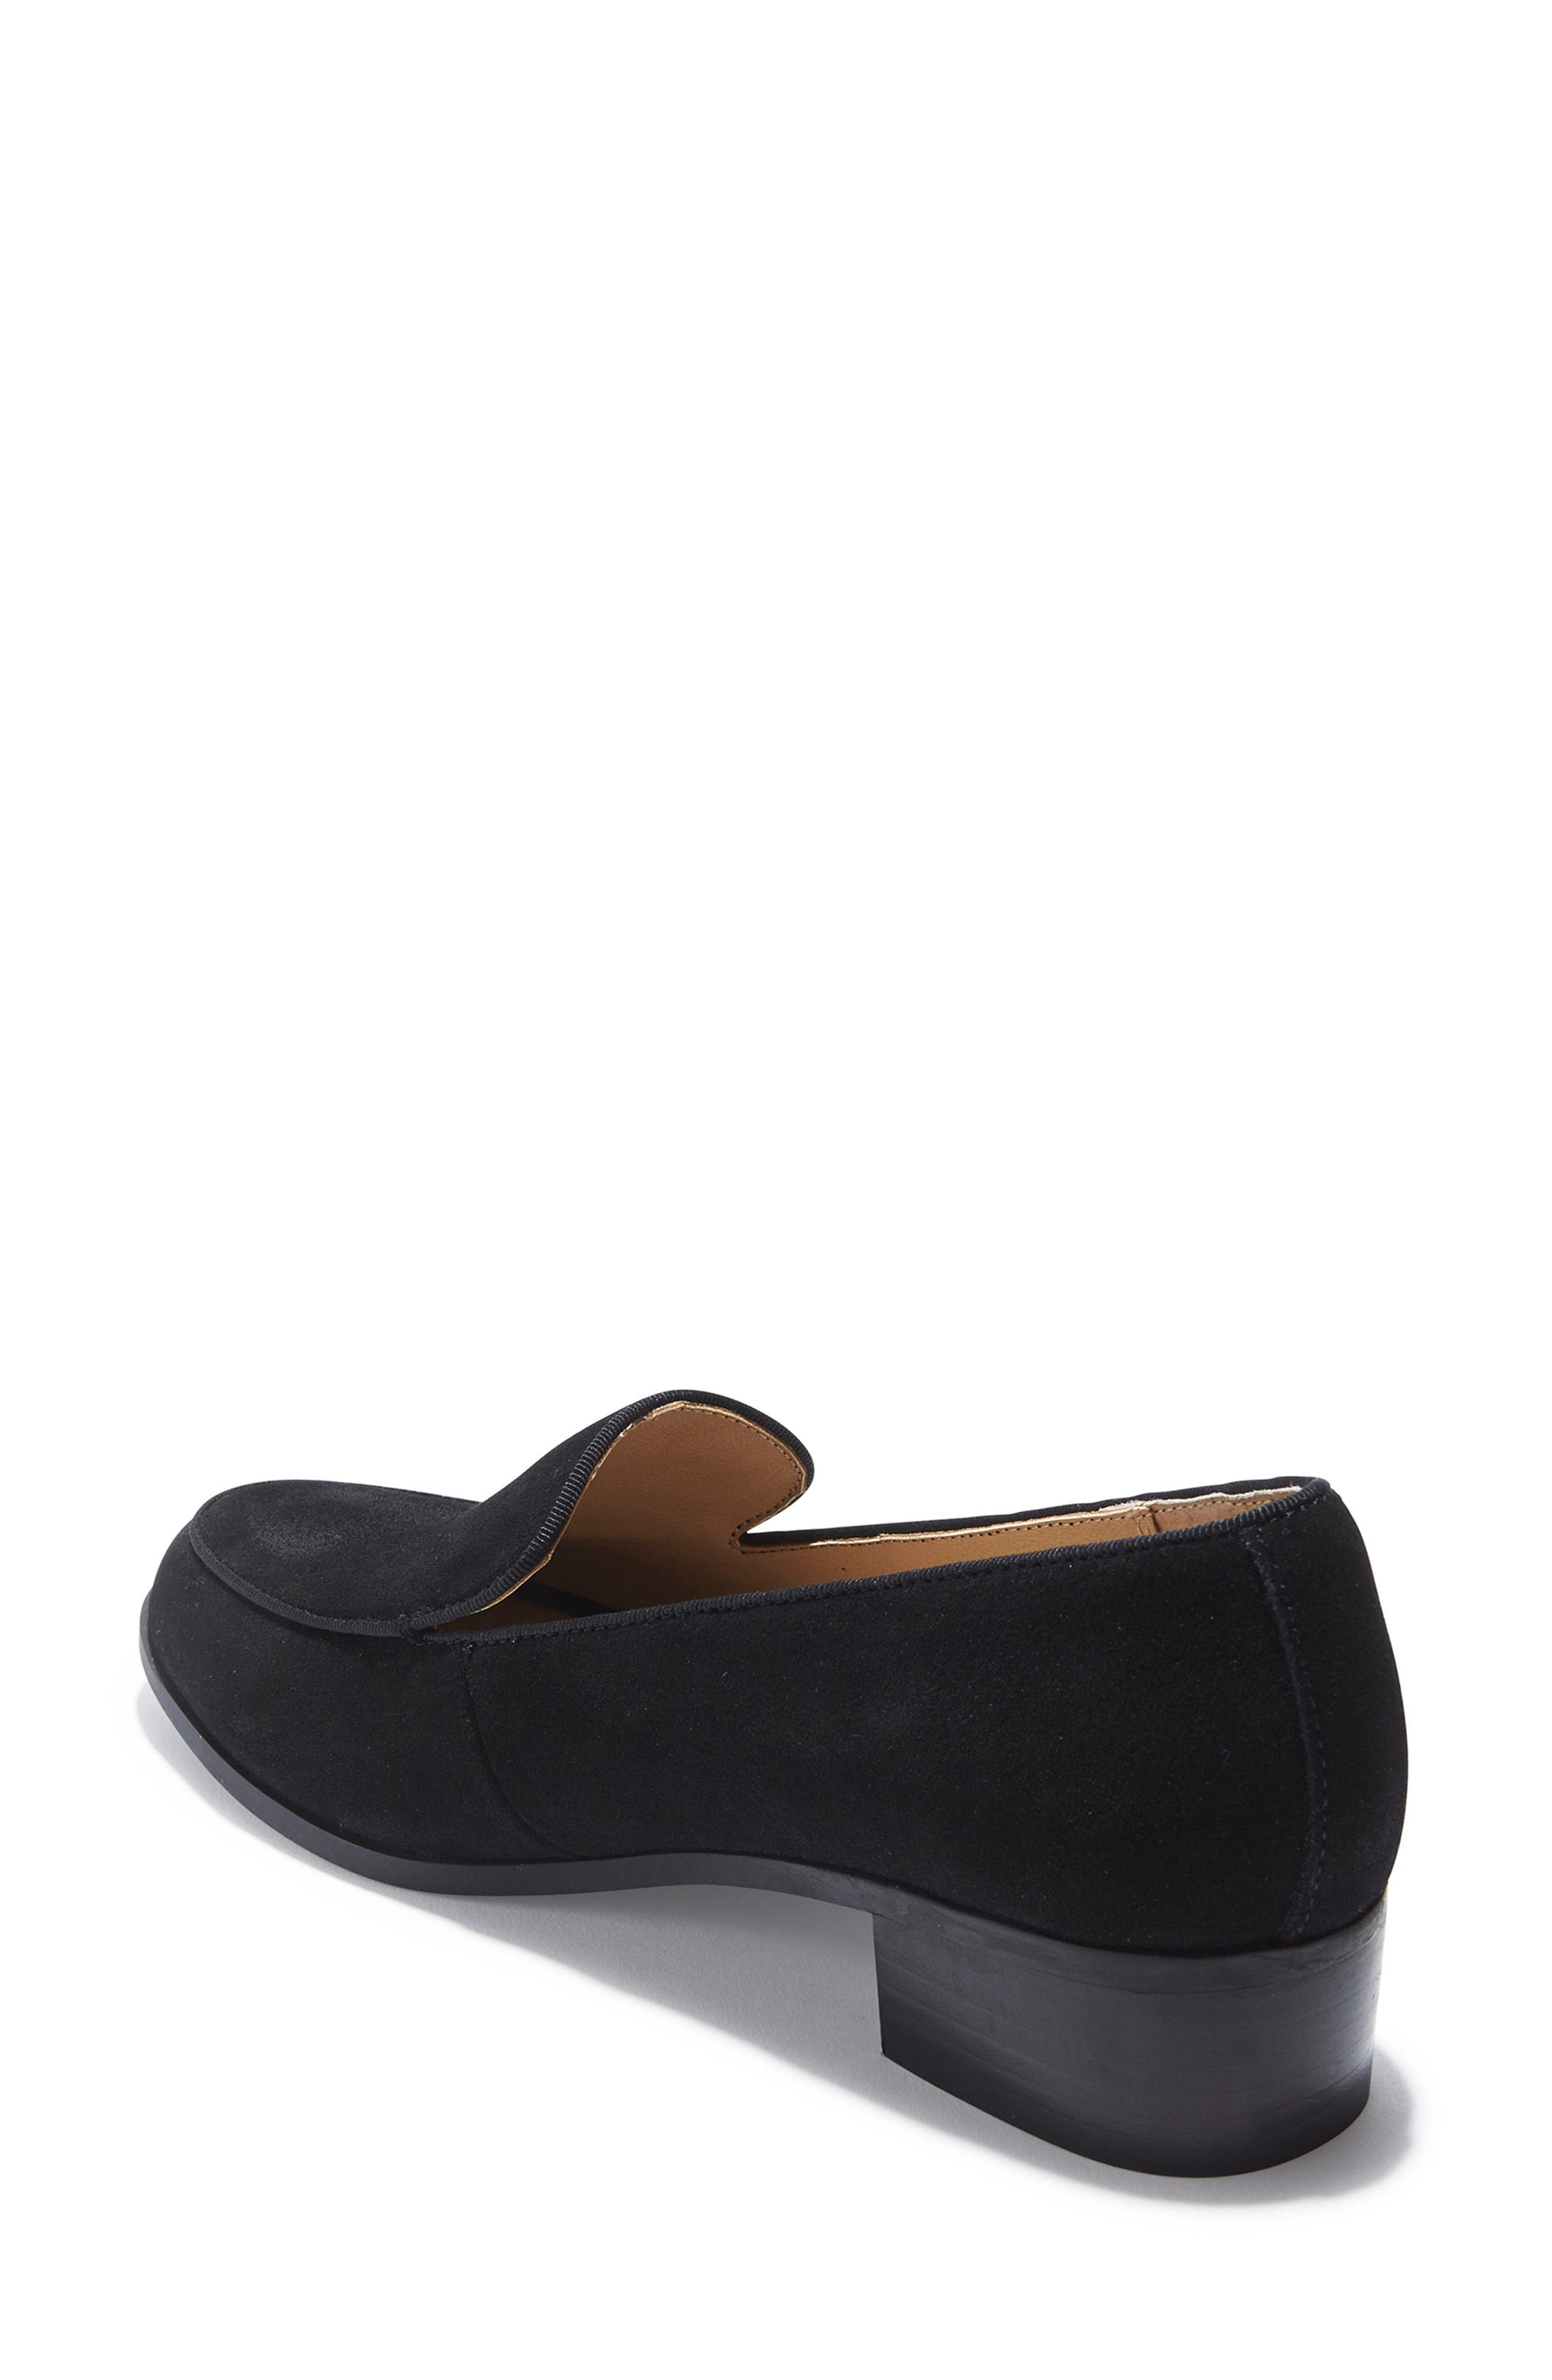 Jazzy Loafer,                             Alternate thumbnail 2, color,                             014